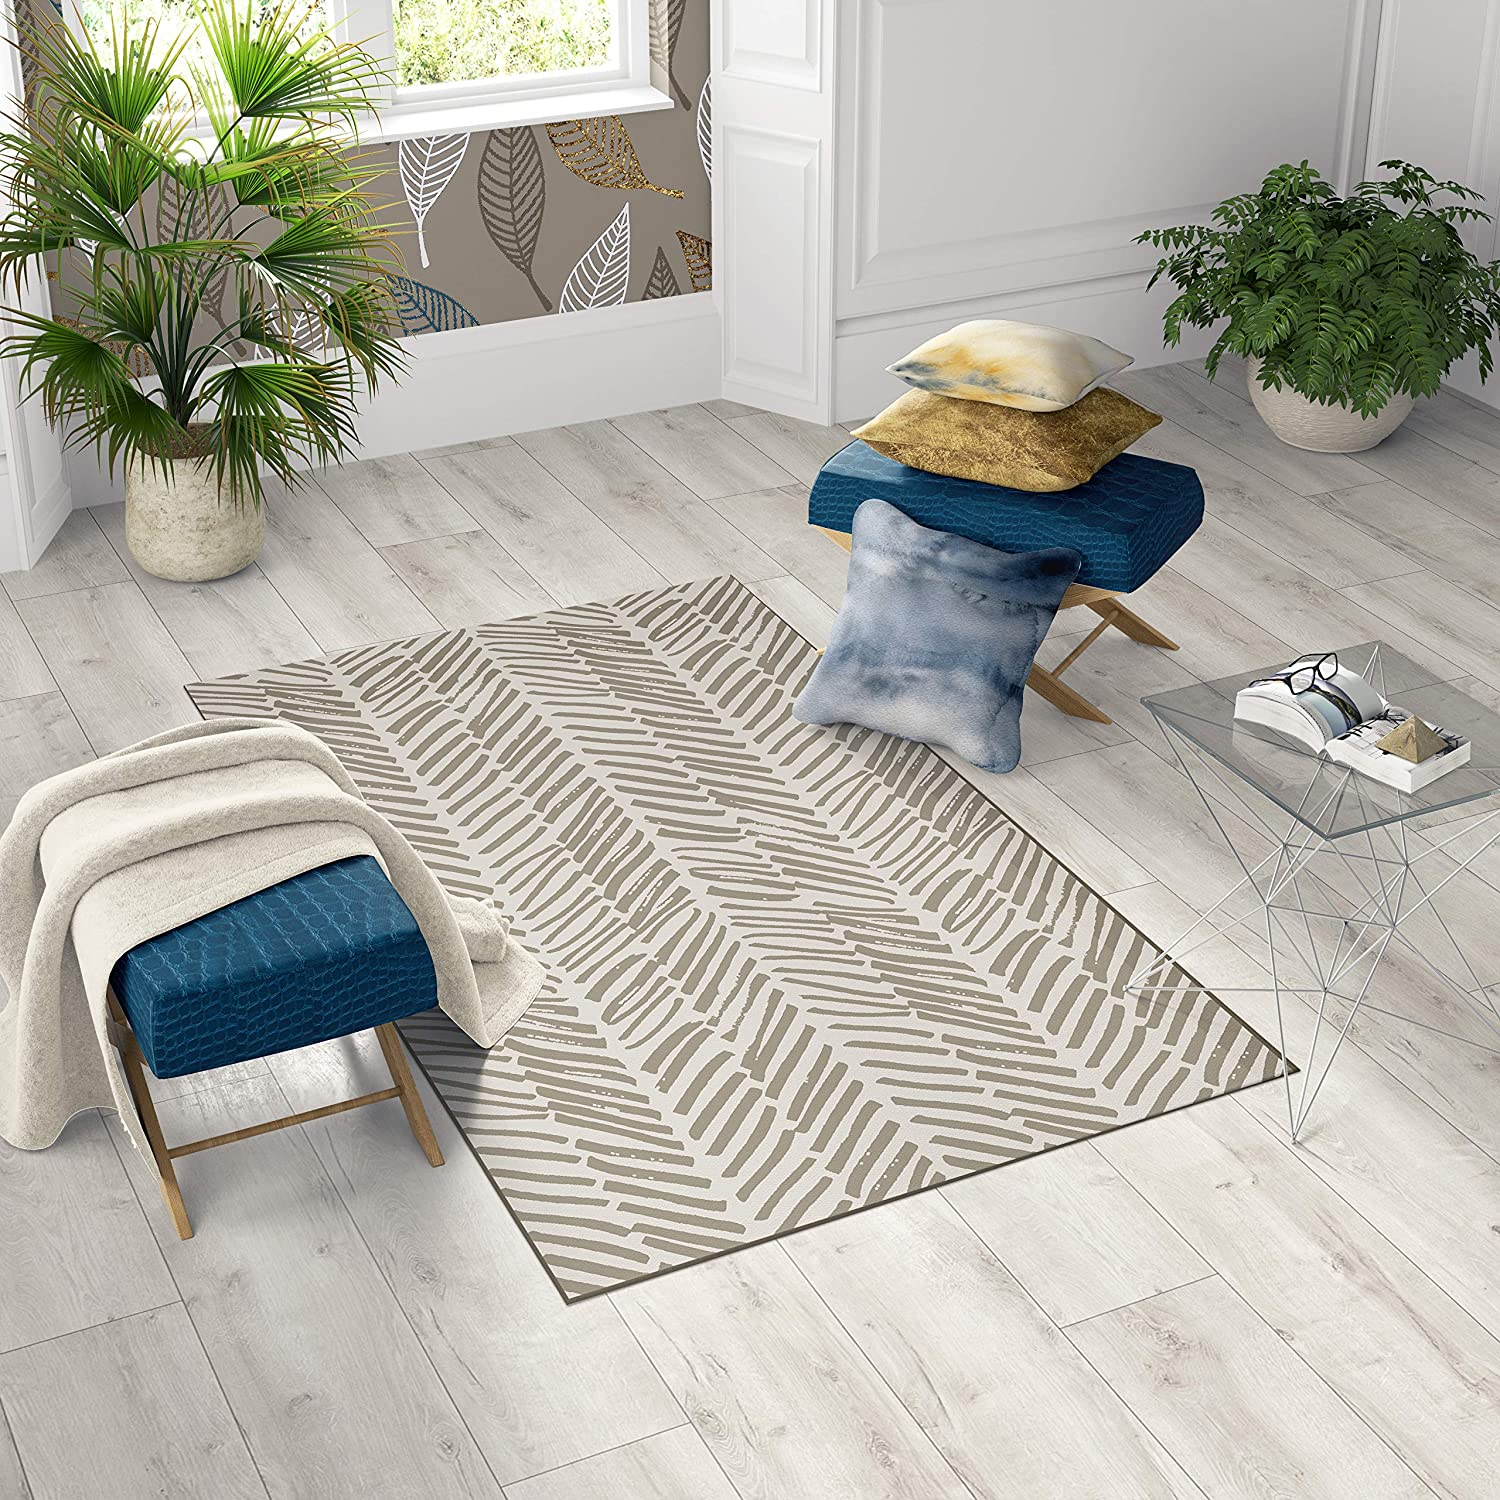 DEERLUX Max 41% OFF Modern Living Room Area Rug Nonslip Save money 6 Backing with 4 x